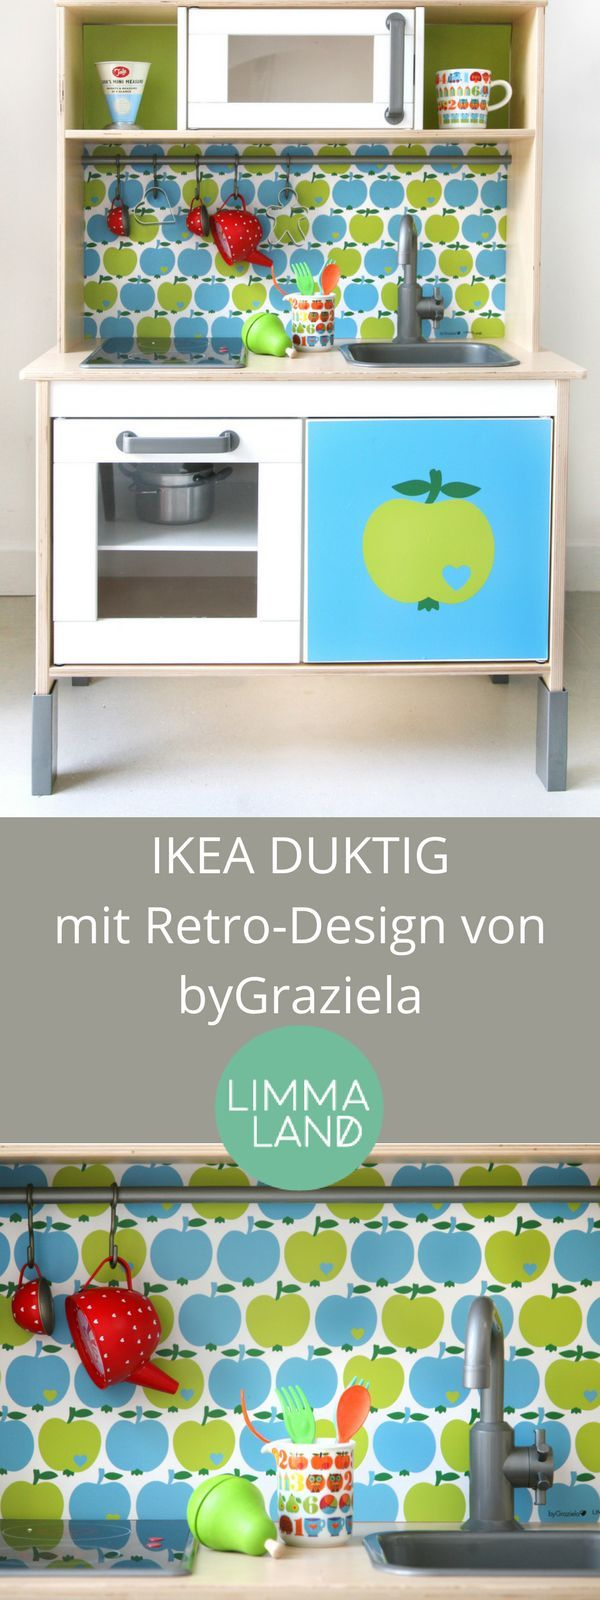 75 besten ikea hack duktig kinderk che bilder auf pinterest einfach farben und ikea kinderk che. Black Bedroom Furniture Sets. Home Design Ideas